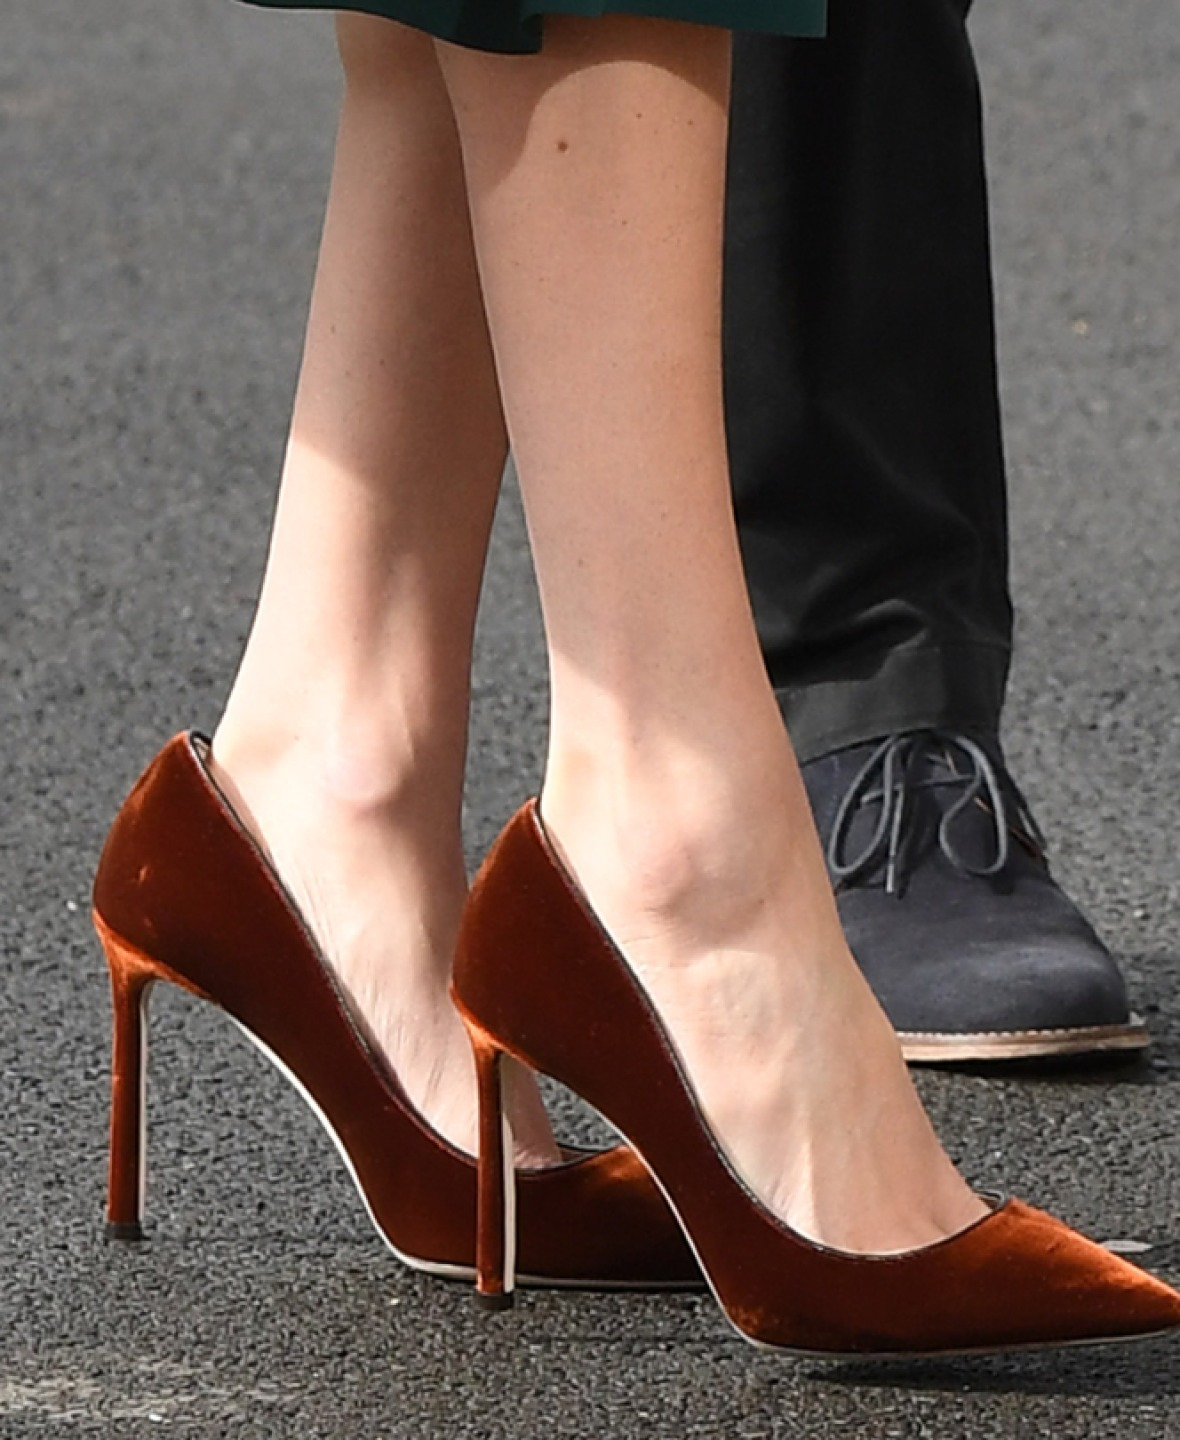 meghan markle shoes getty images